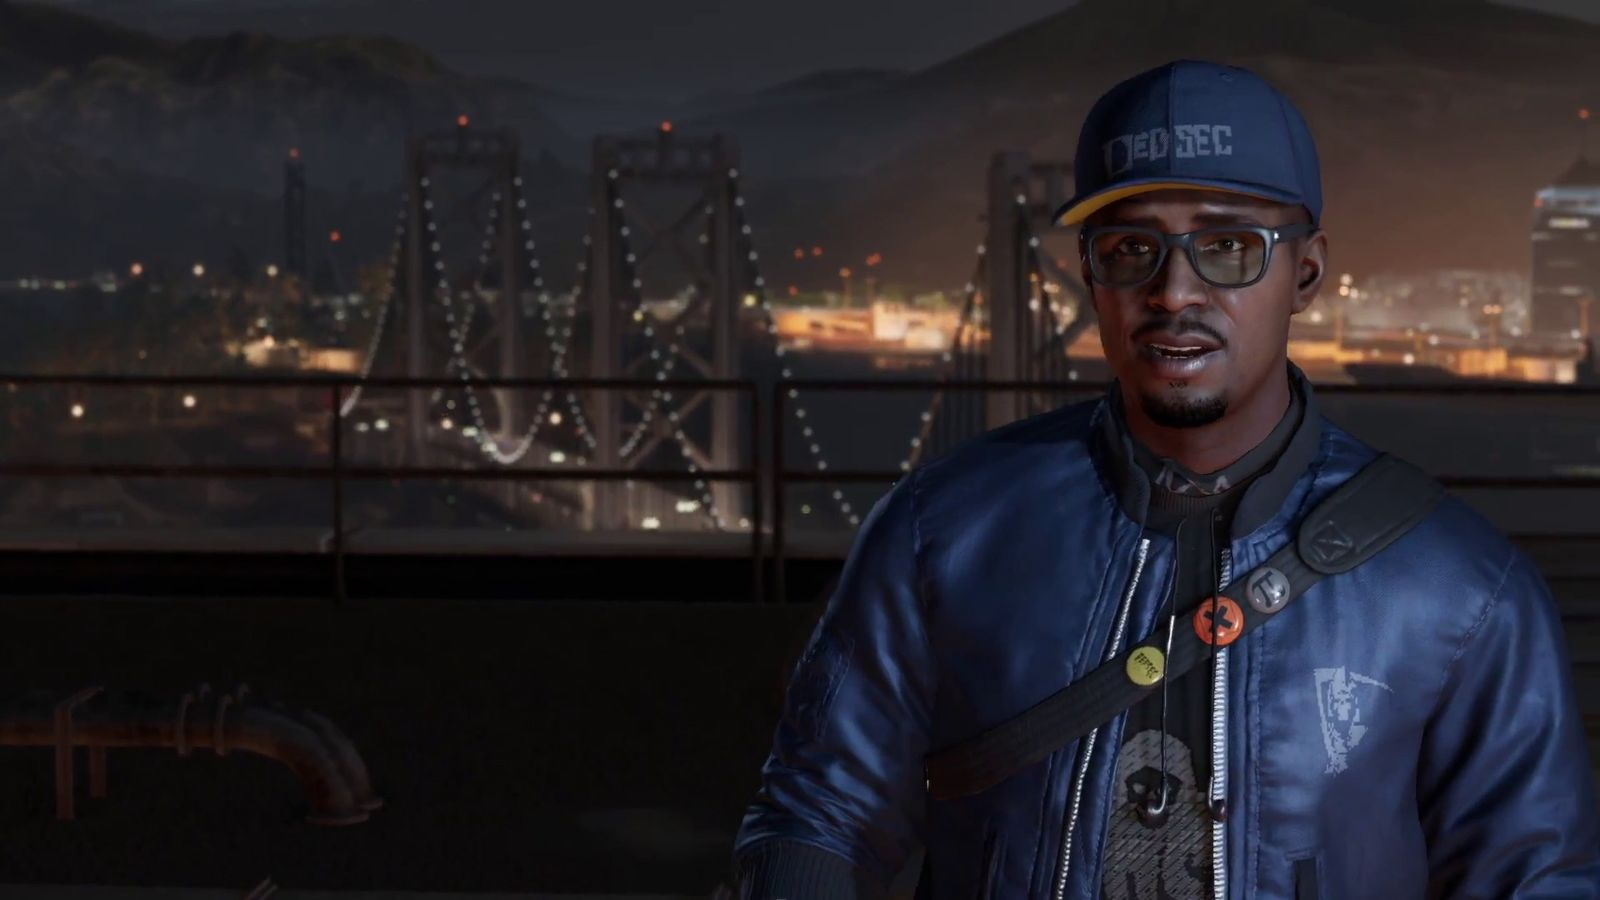 watch-dogs-2-screencap_1920-0-0